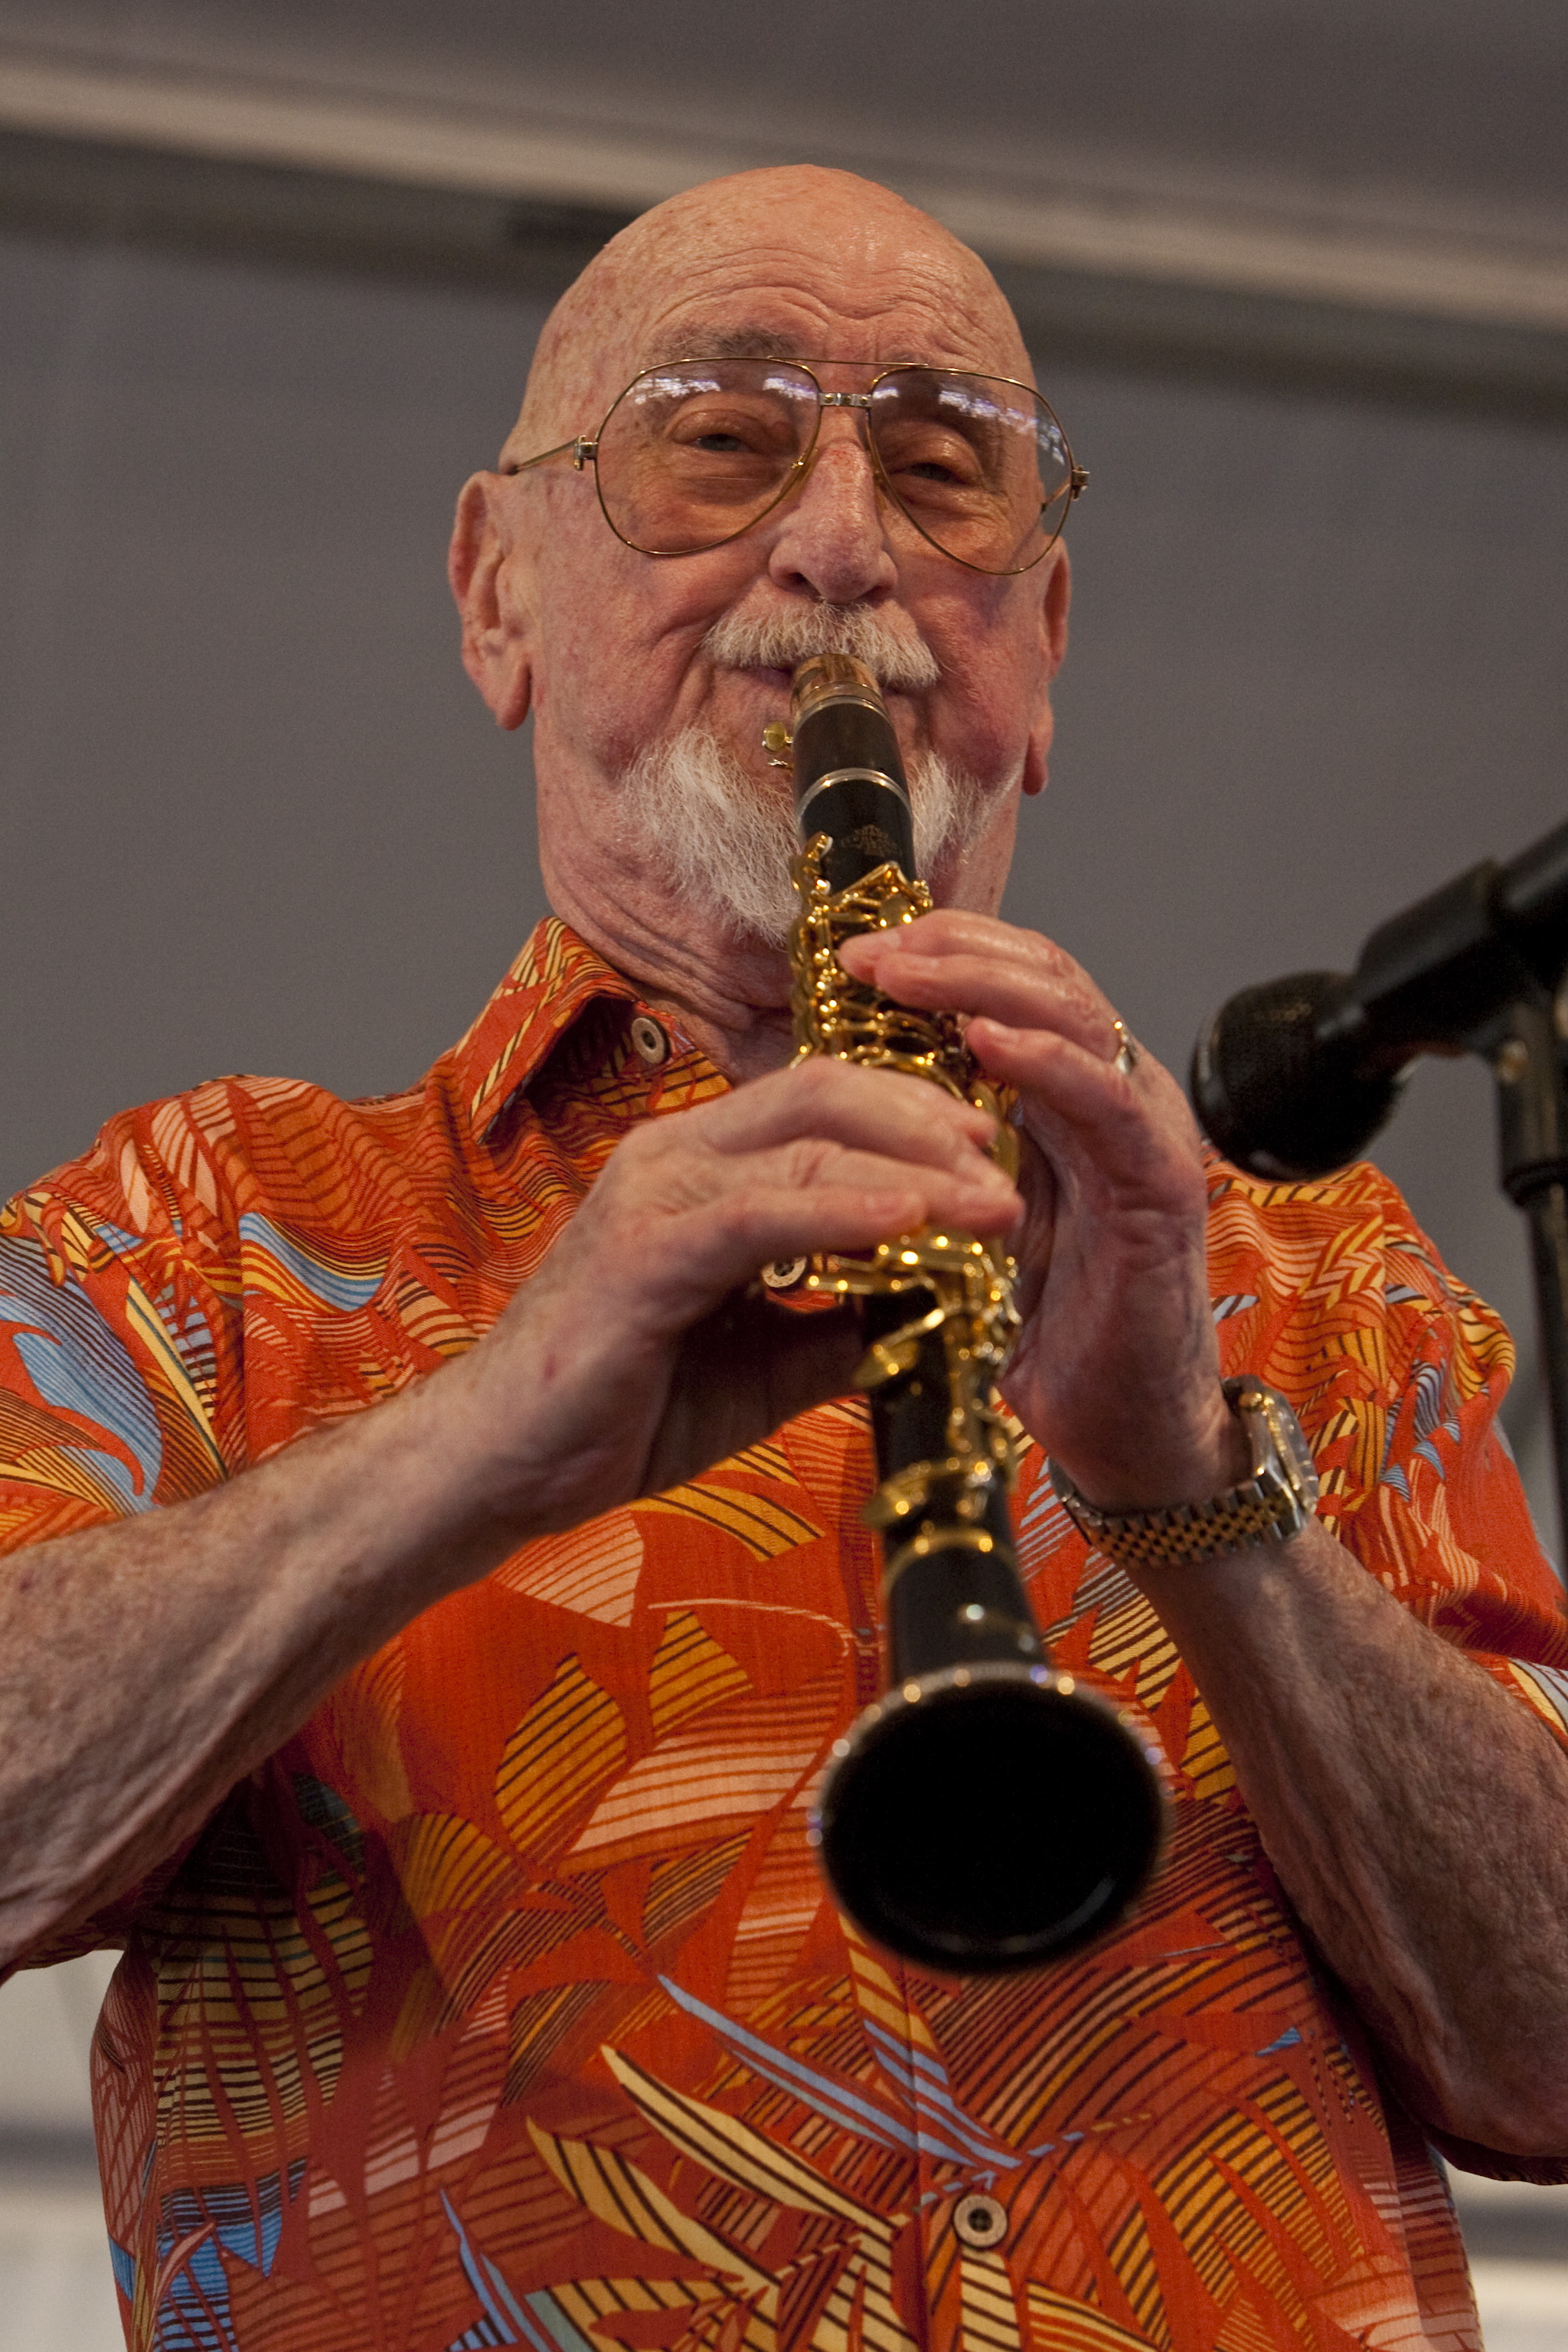 Pete Fountain at the 40th Anniversary New Orleans Jazz and Heritage Festival, USA